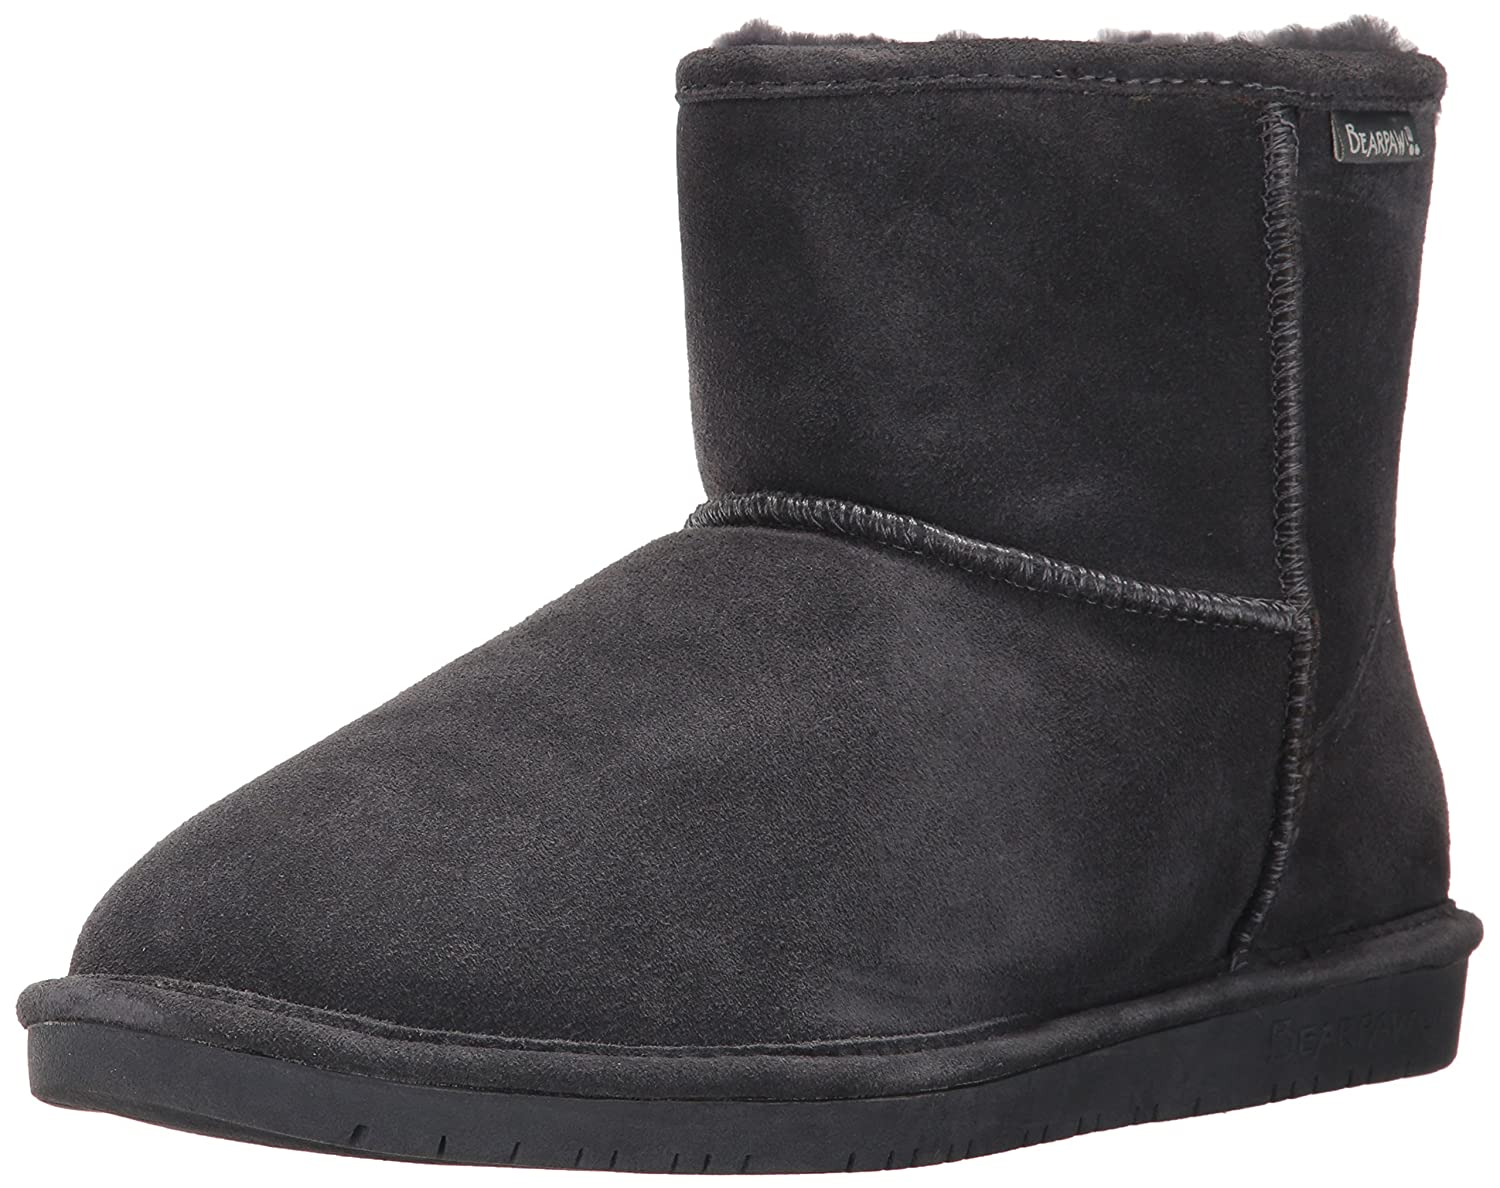 BEARPAW Demi Fashion Boot B00TE1LSBQ 10 B(M) US|Charcoal